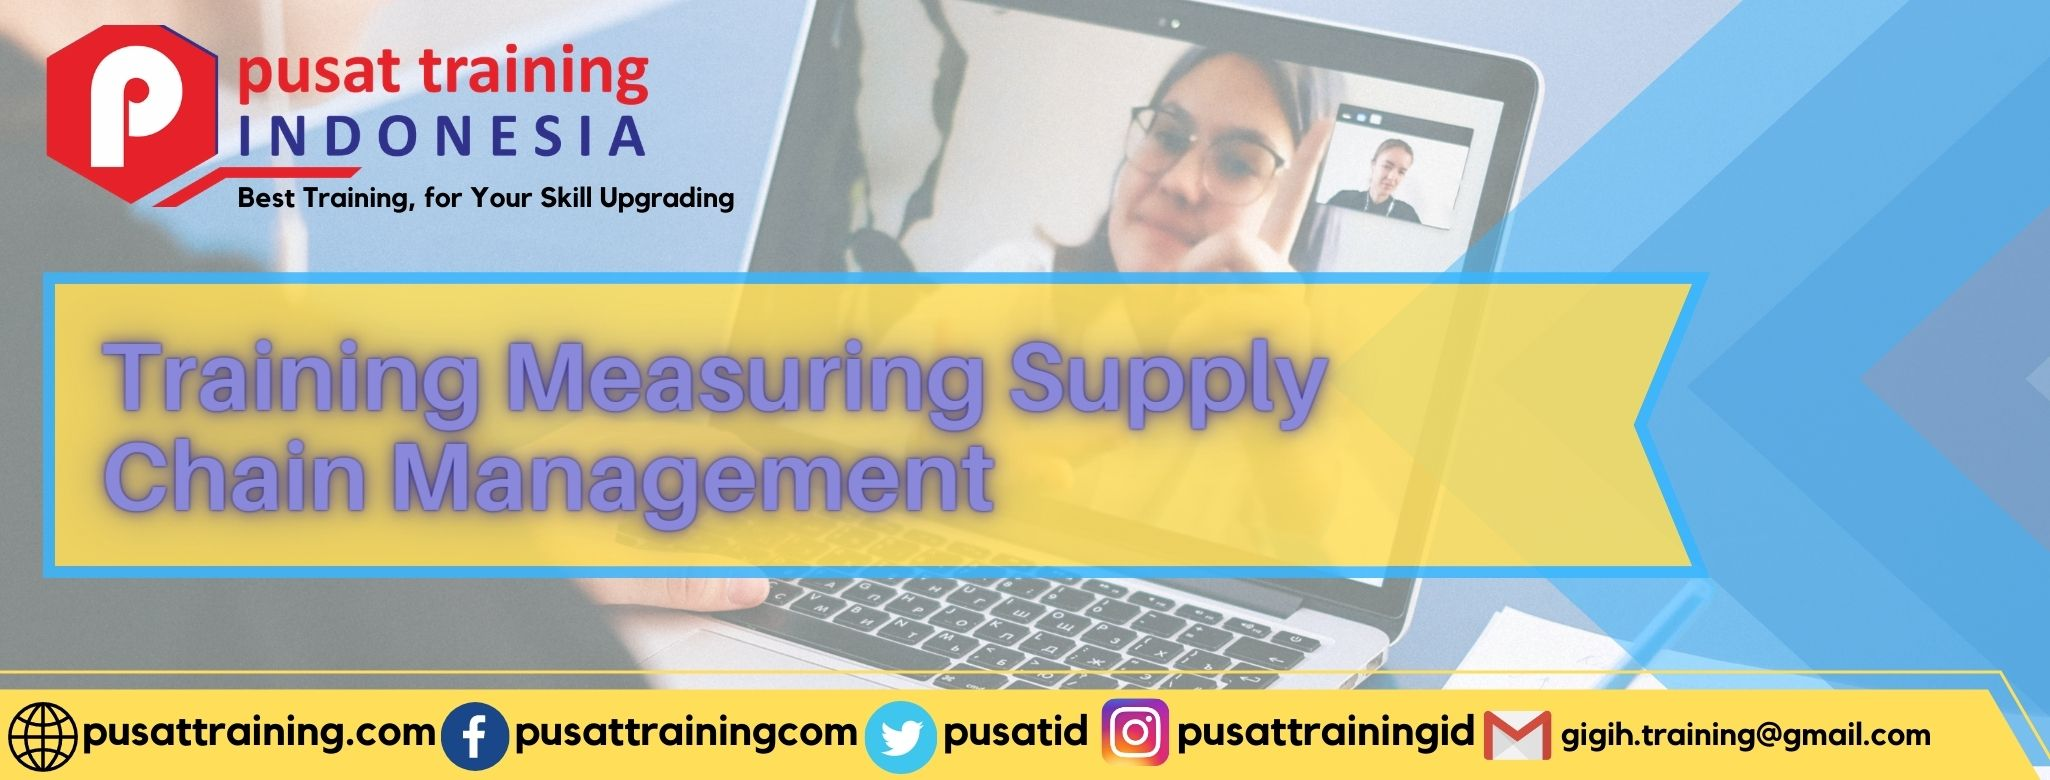 Training Measuring Supply Chain Management